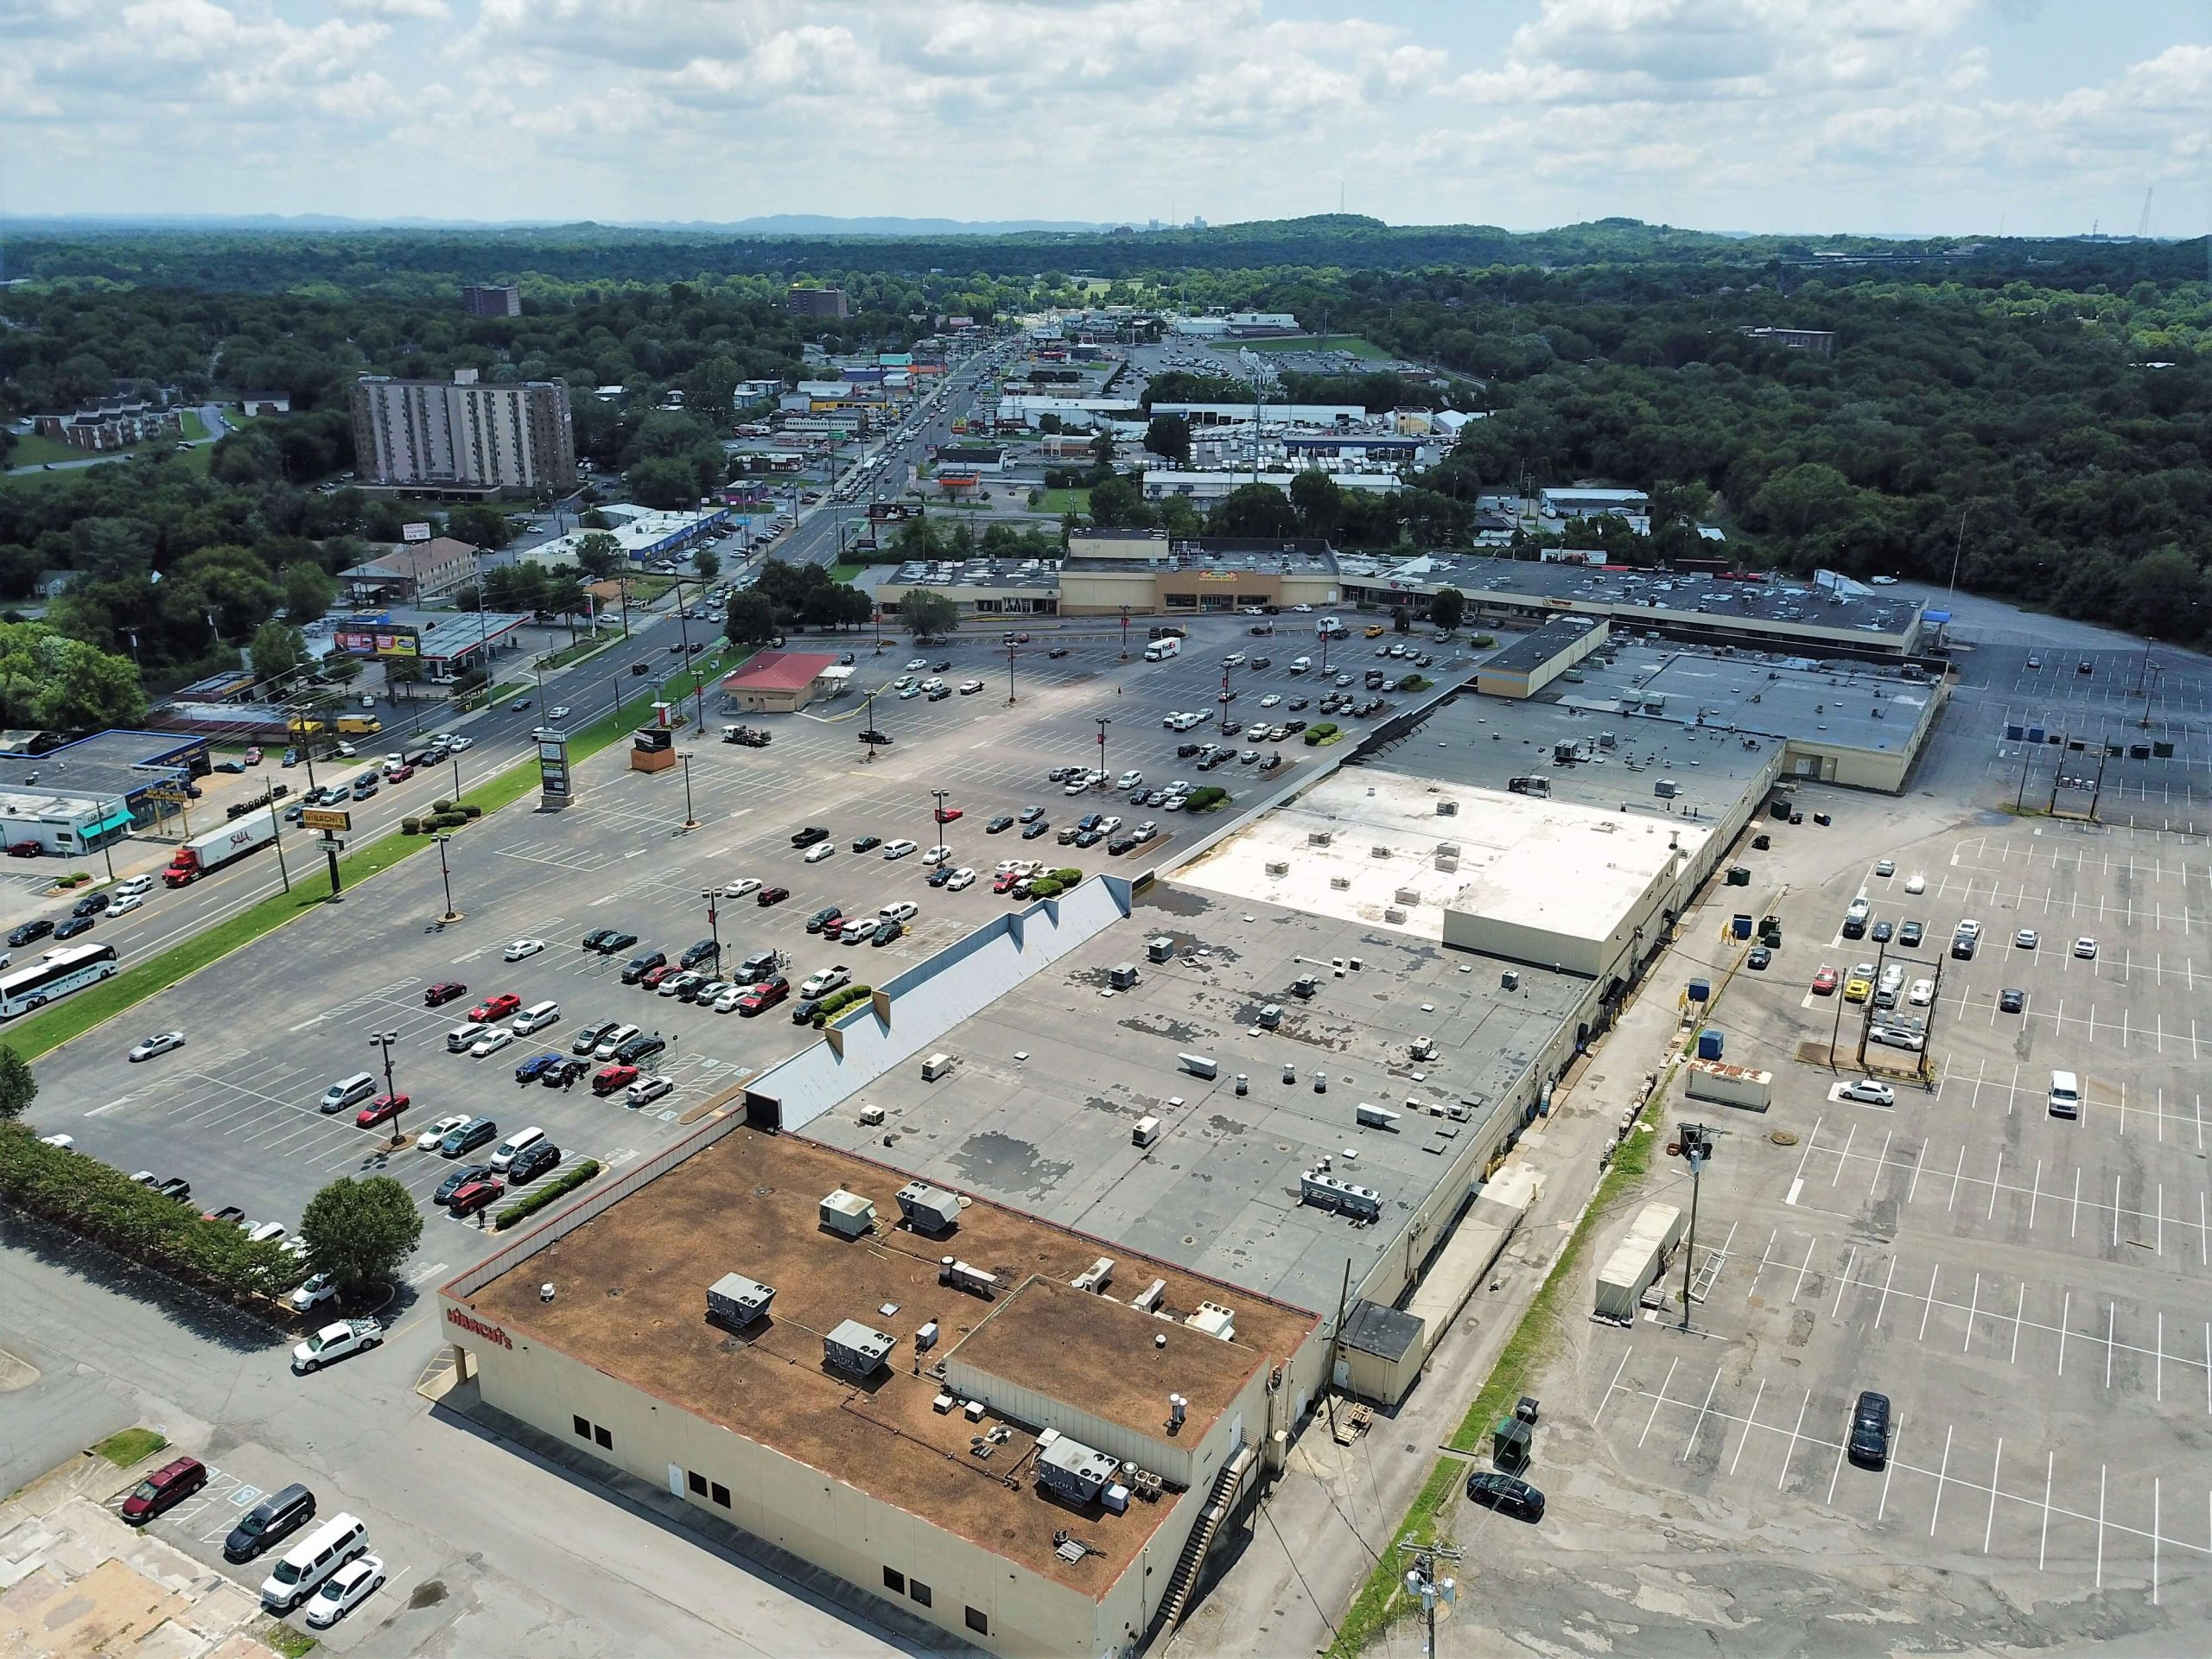 aerial shot of commercial roof with cars in the parking lot